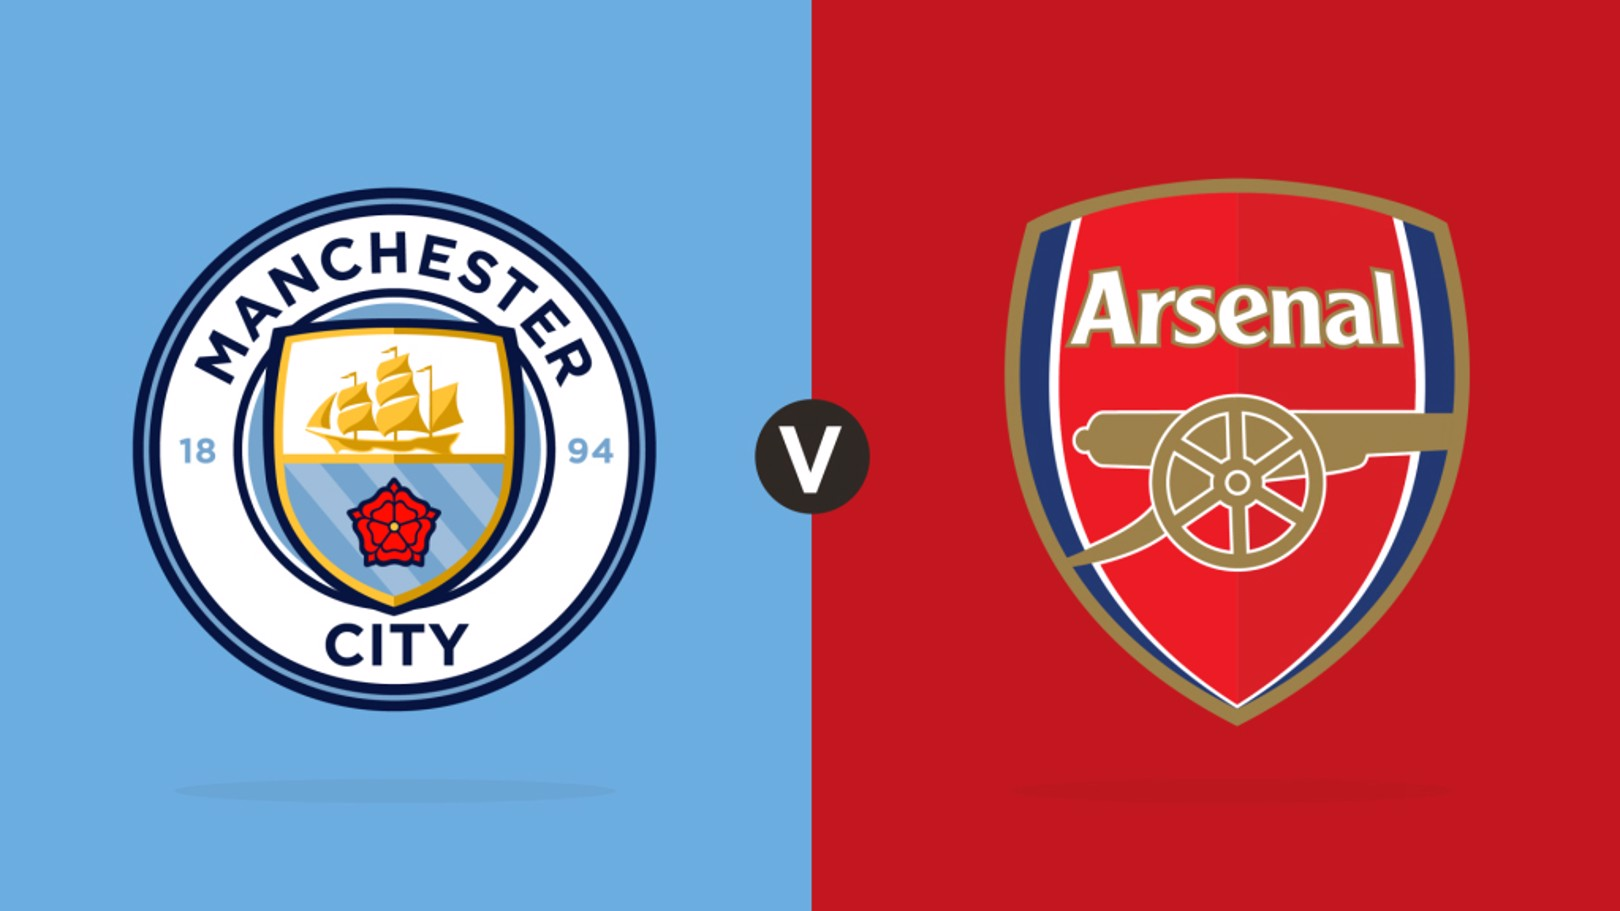 City v Arsenal